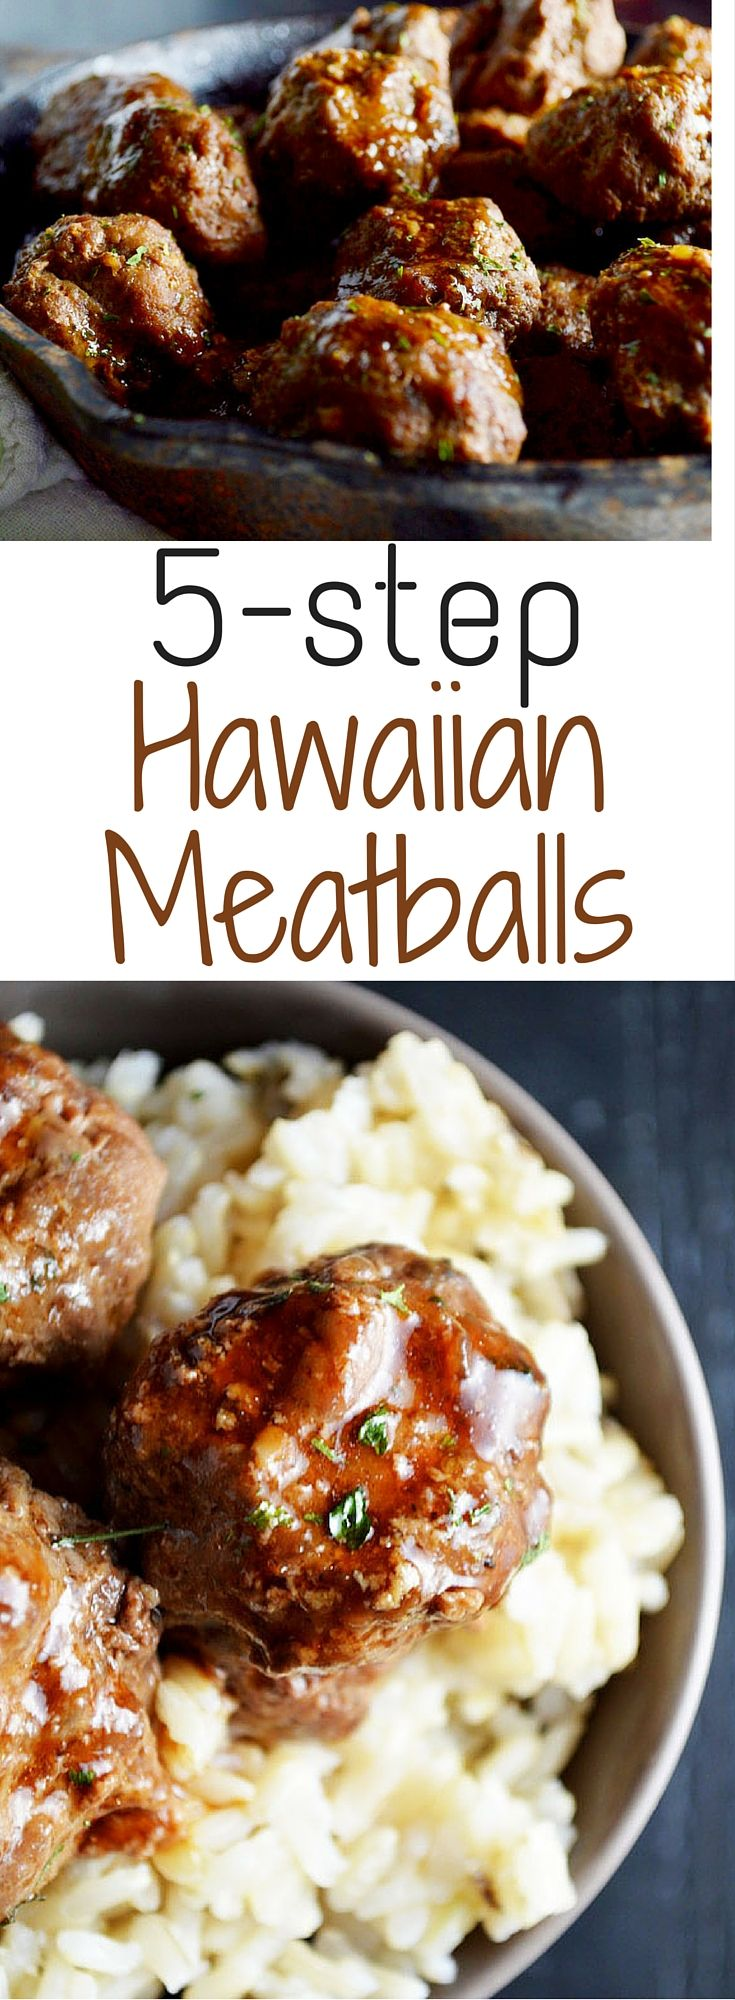 These meatballs are seriously amazing. Hawaiian Meatballs for the win!